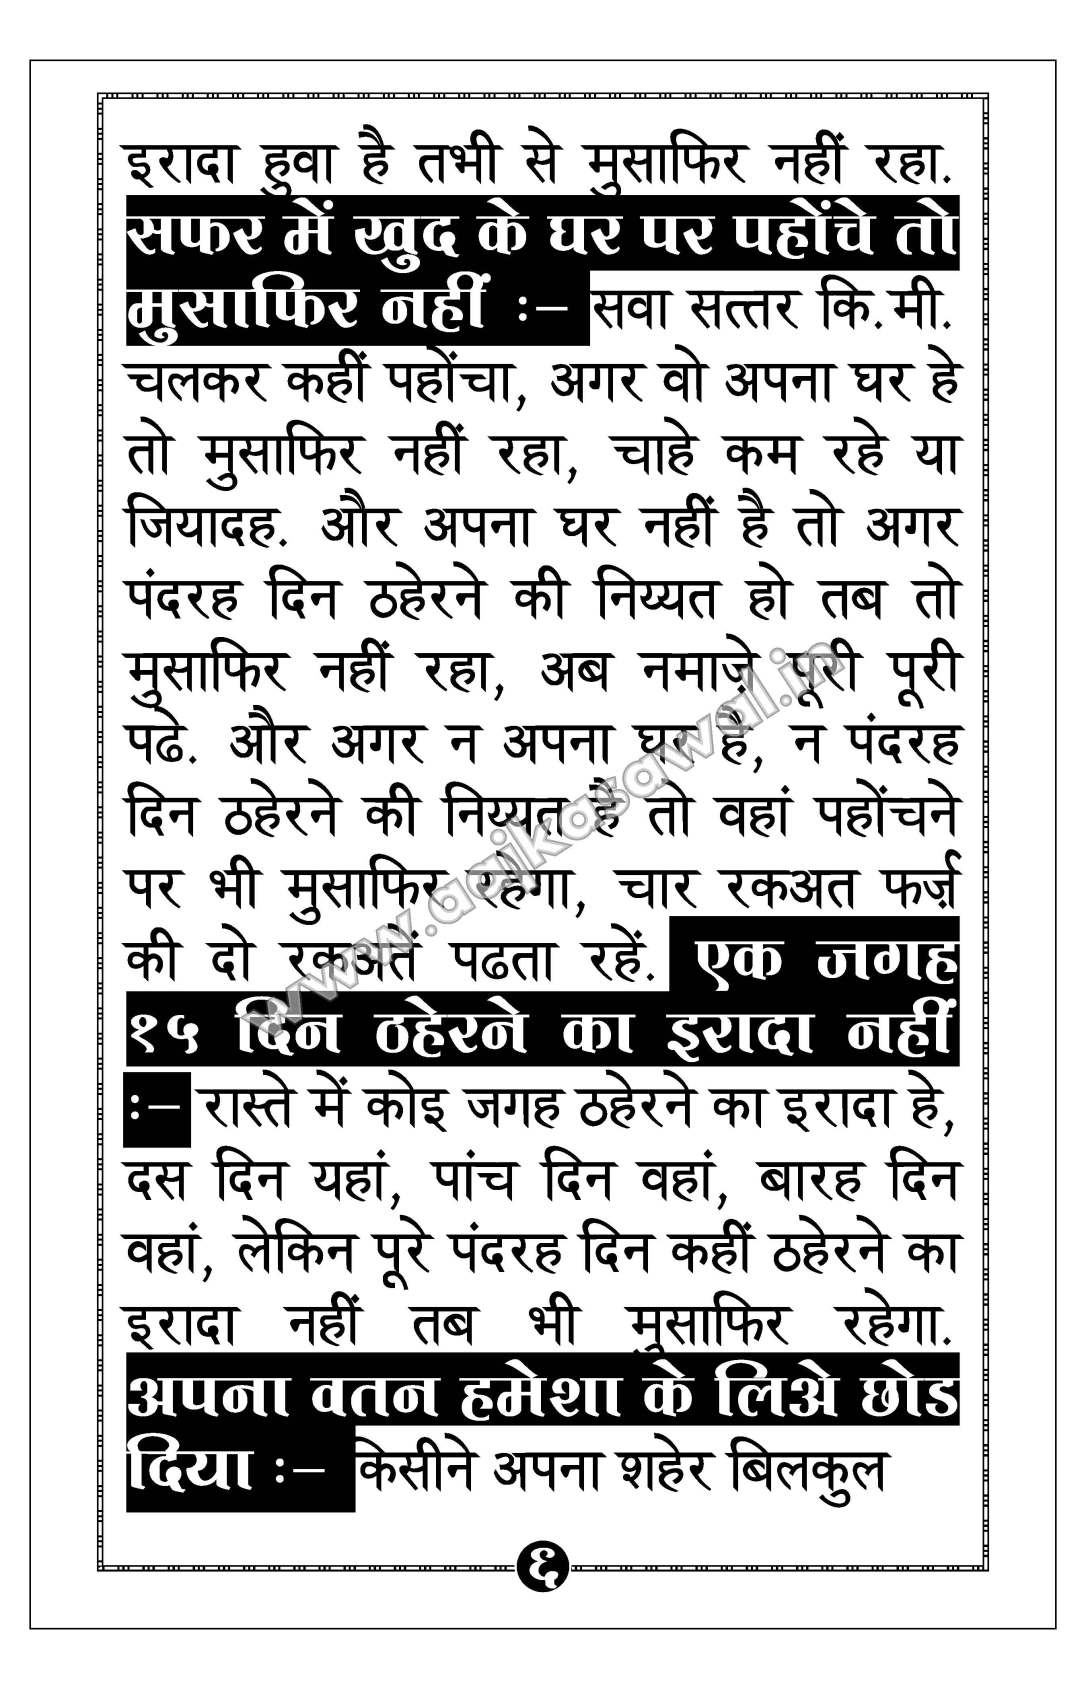 musafir-ki-namaz-hindi_Page_6